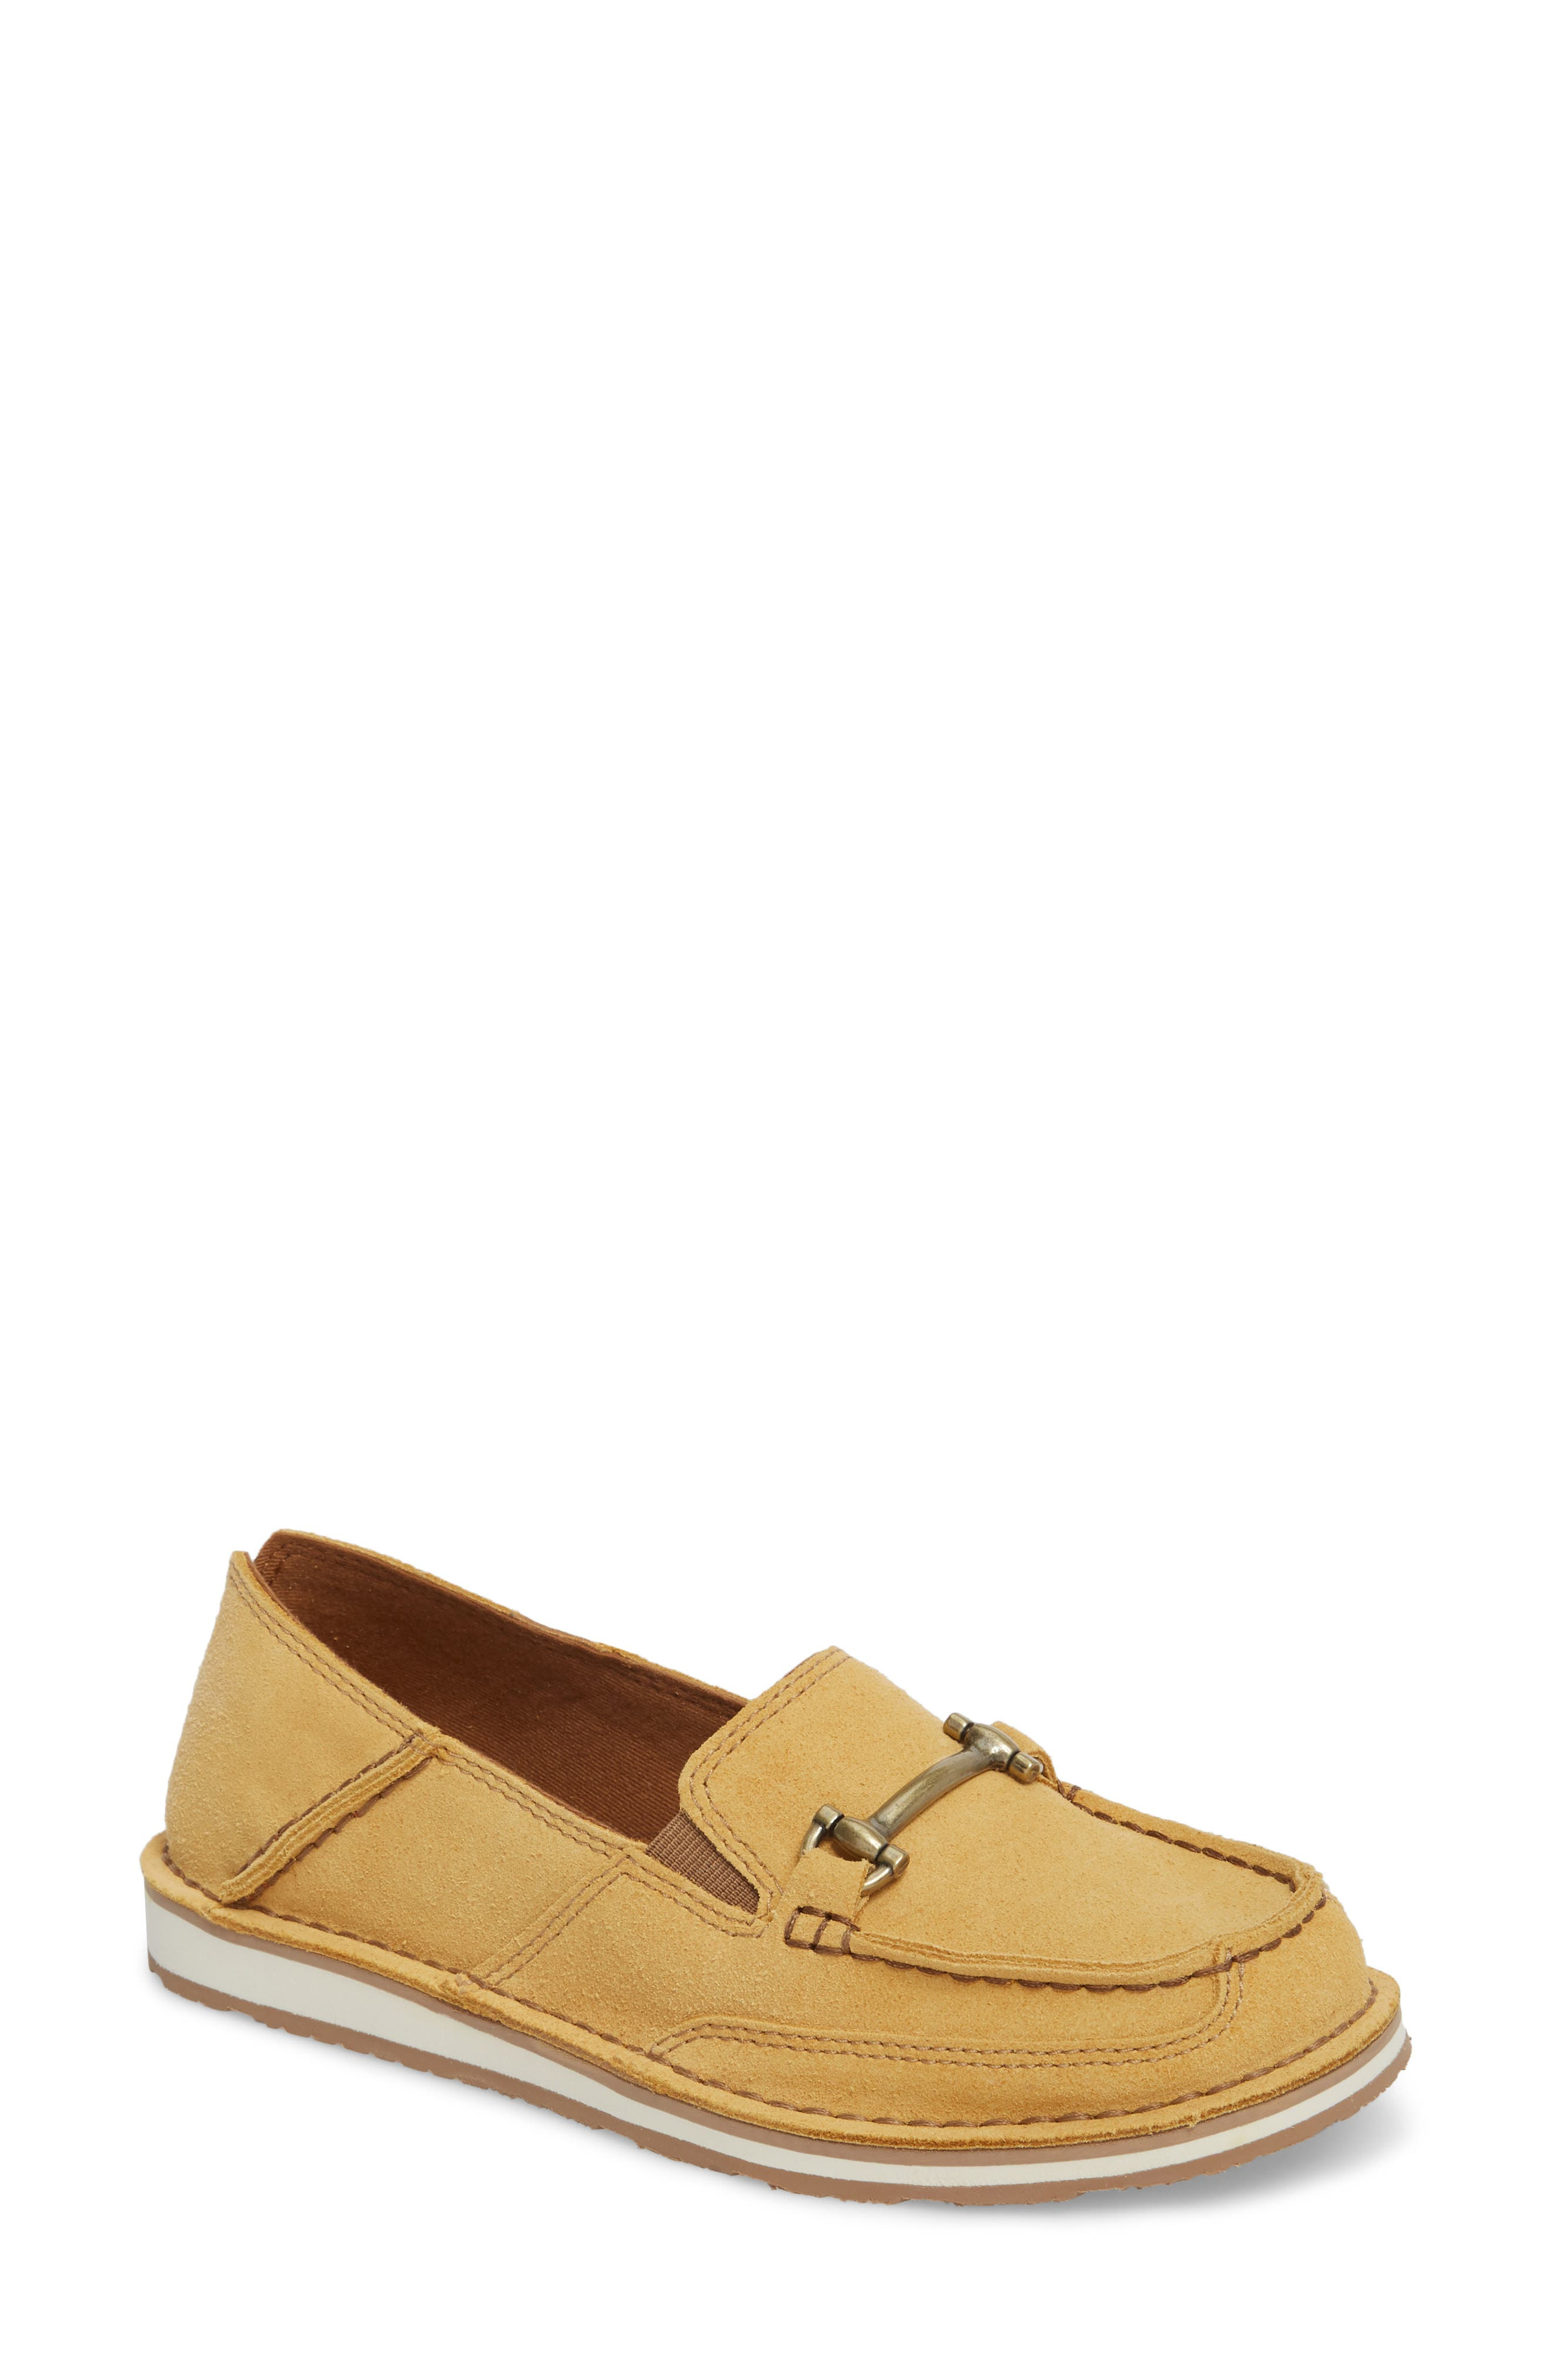 Main Image - Ariat Cruiser Castaway Loafer (Women)